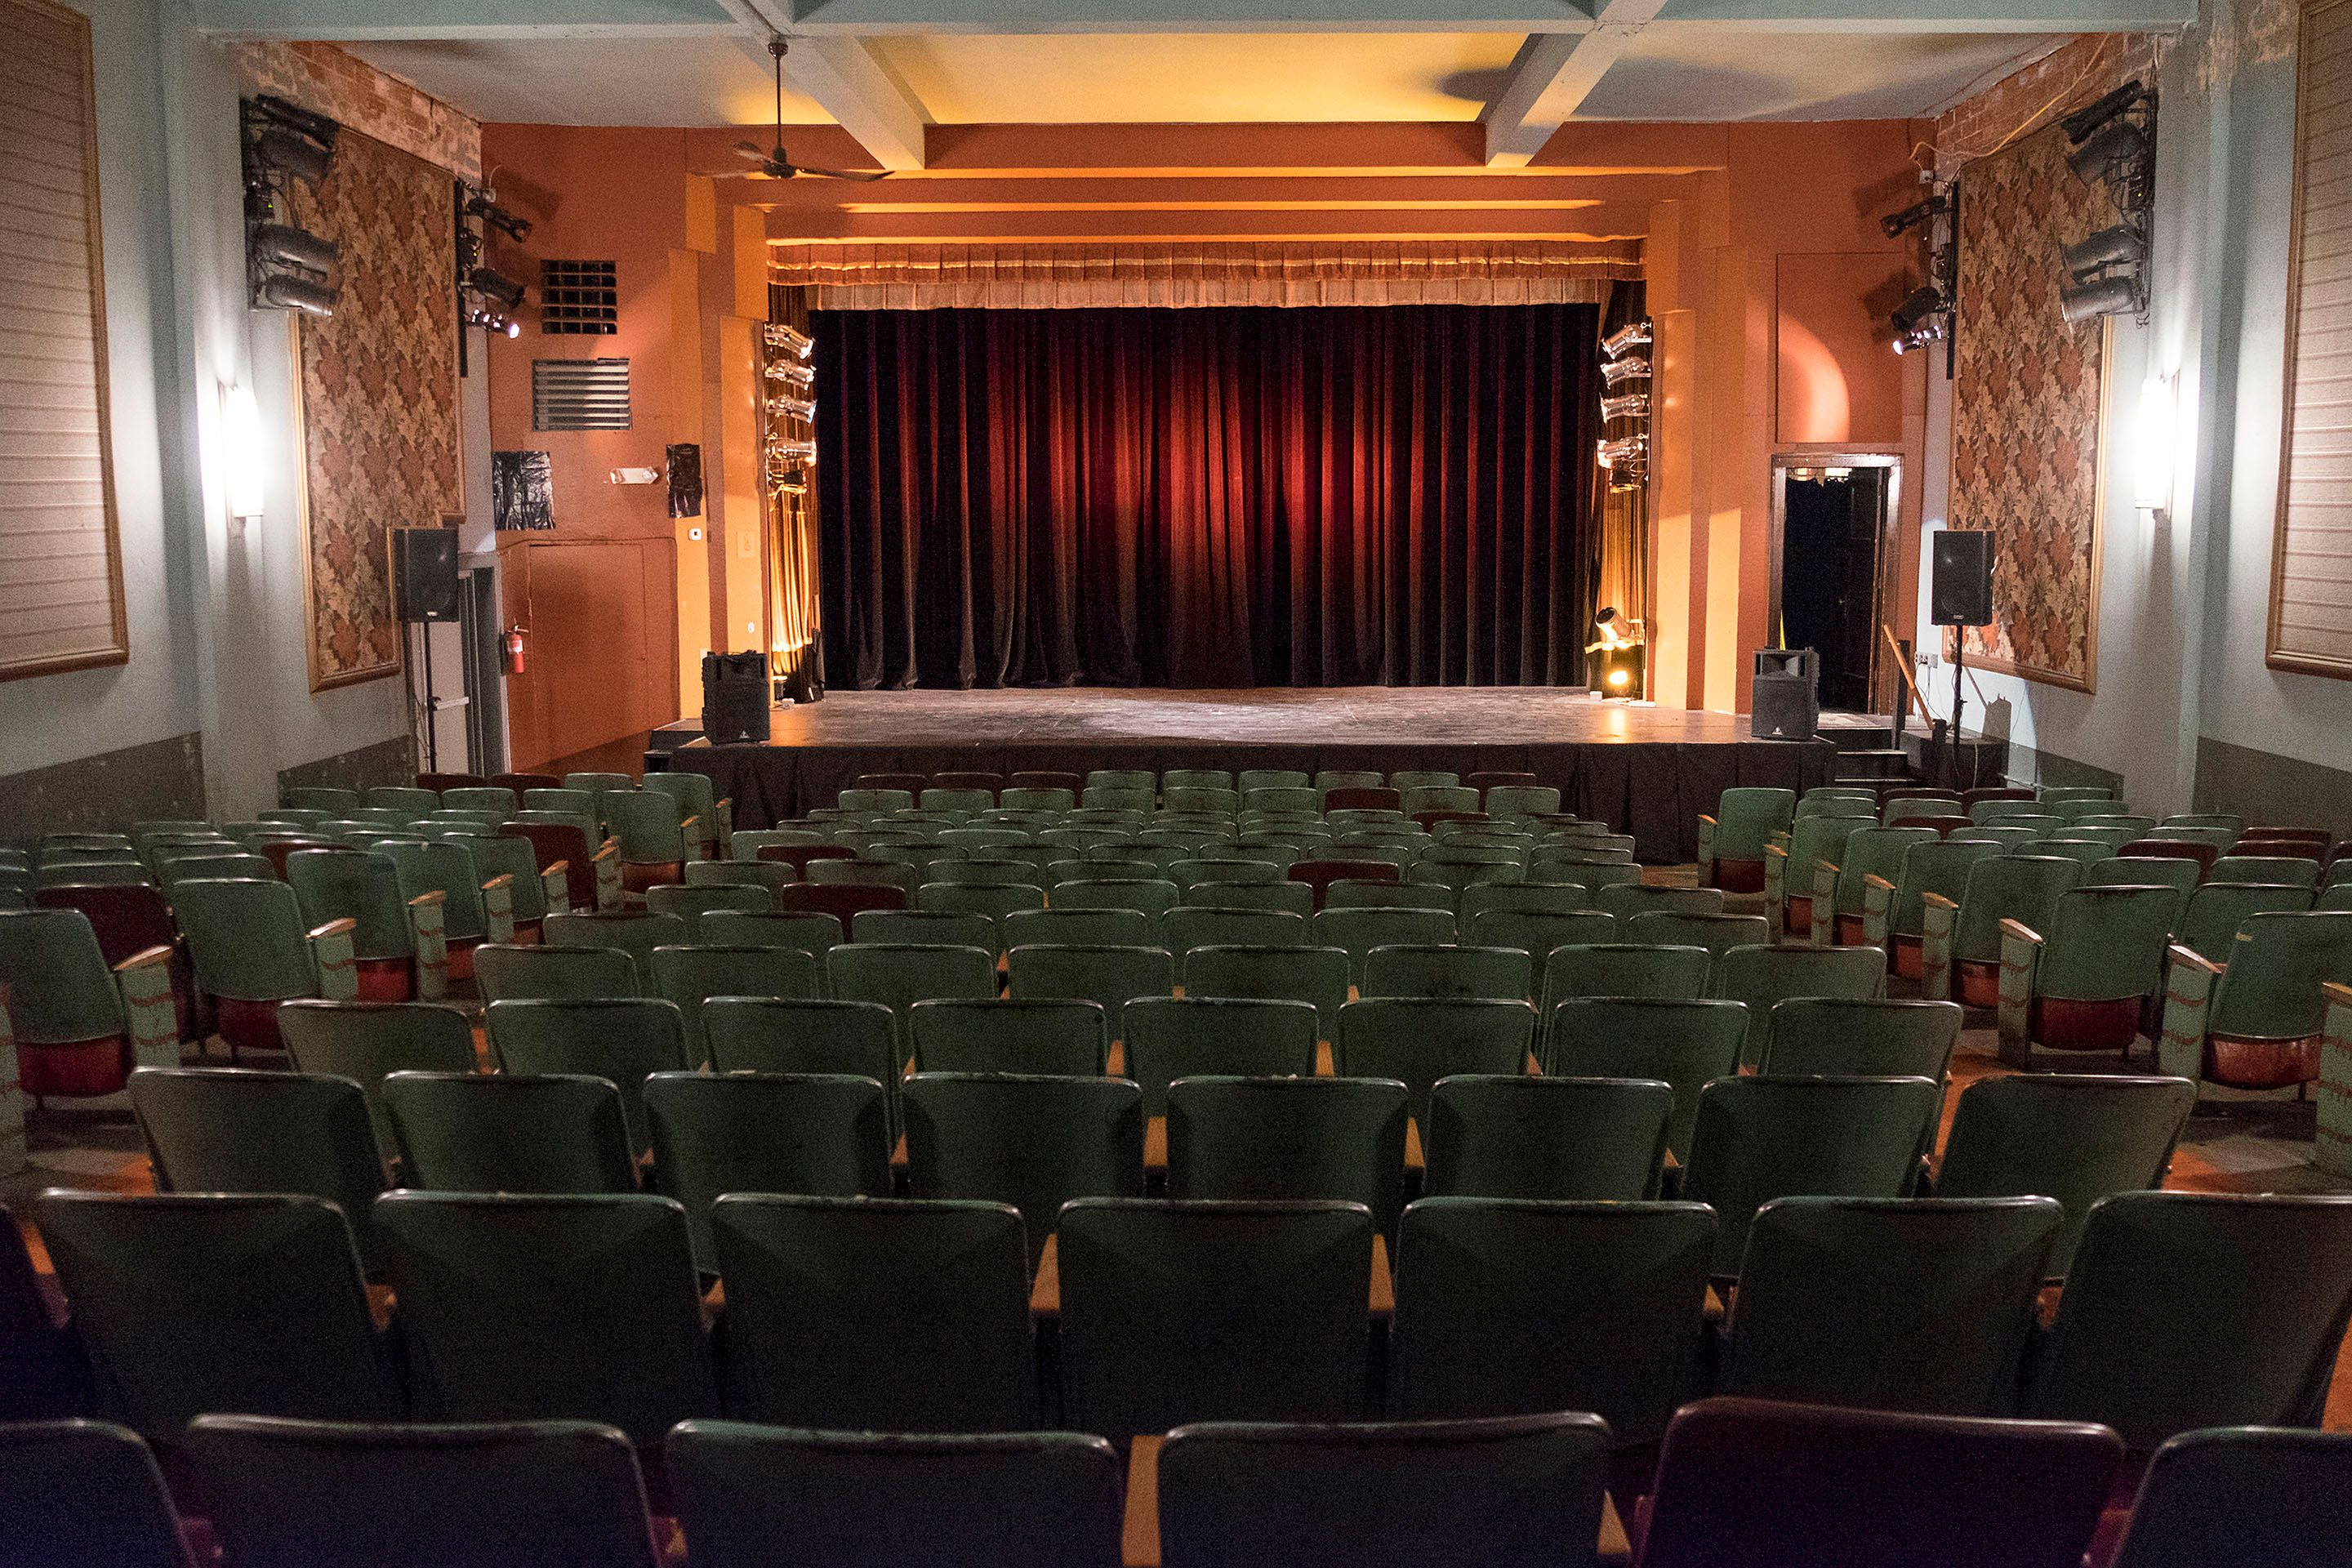 State Theatre in Zumbrota - Photo by Mark Lieberman - October 18, 2016